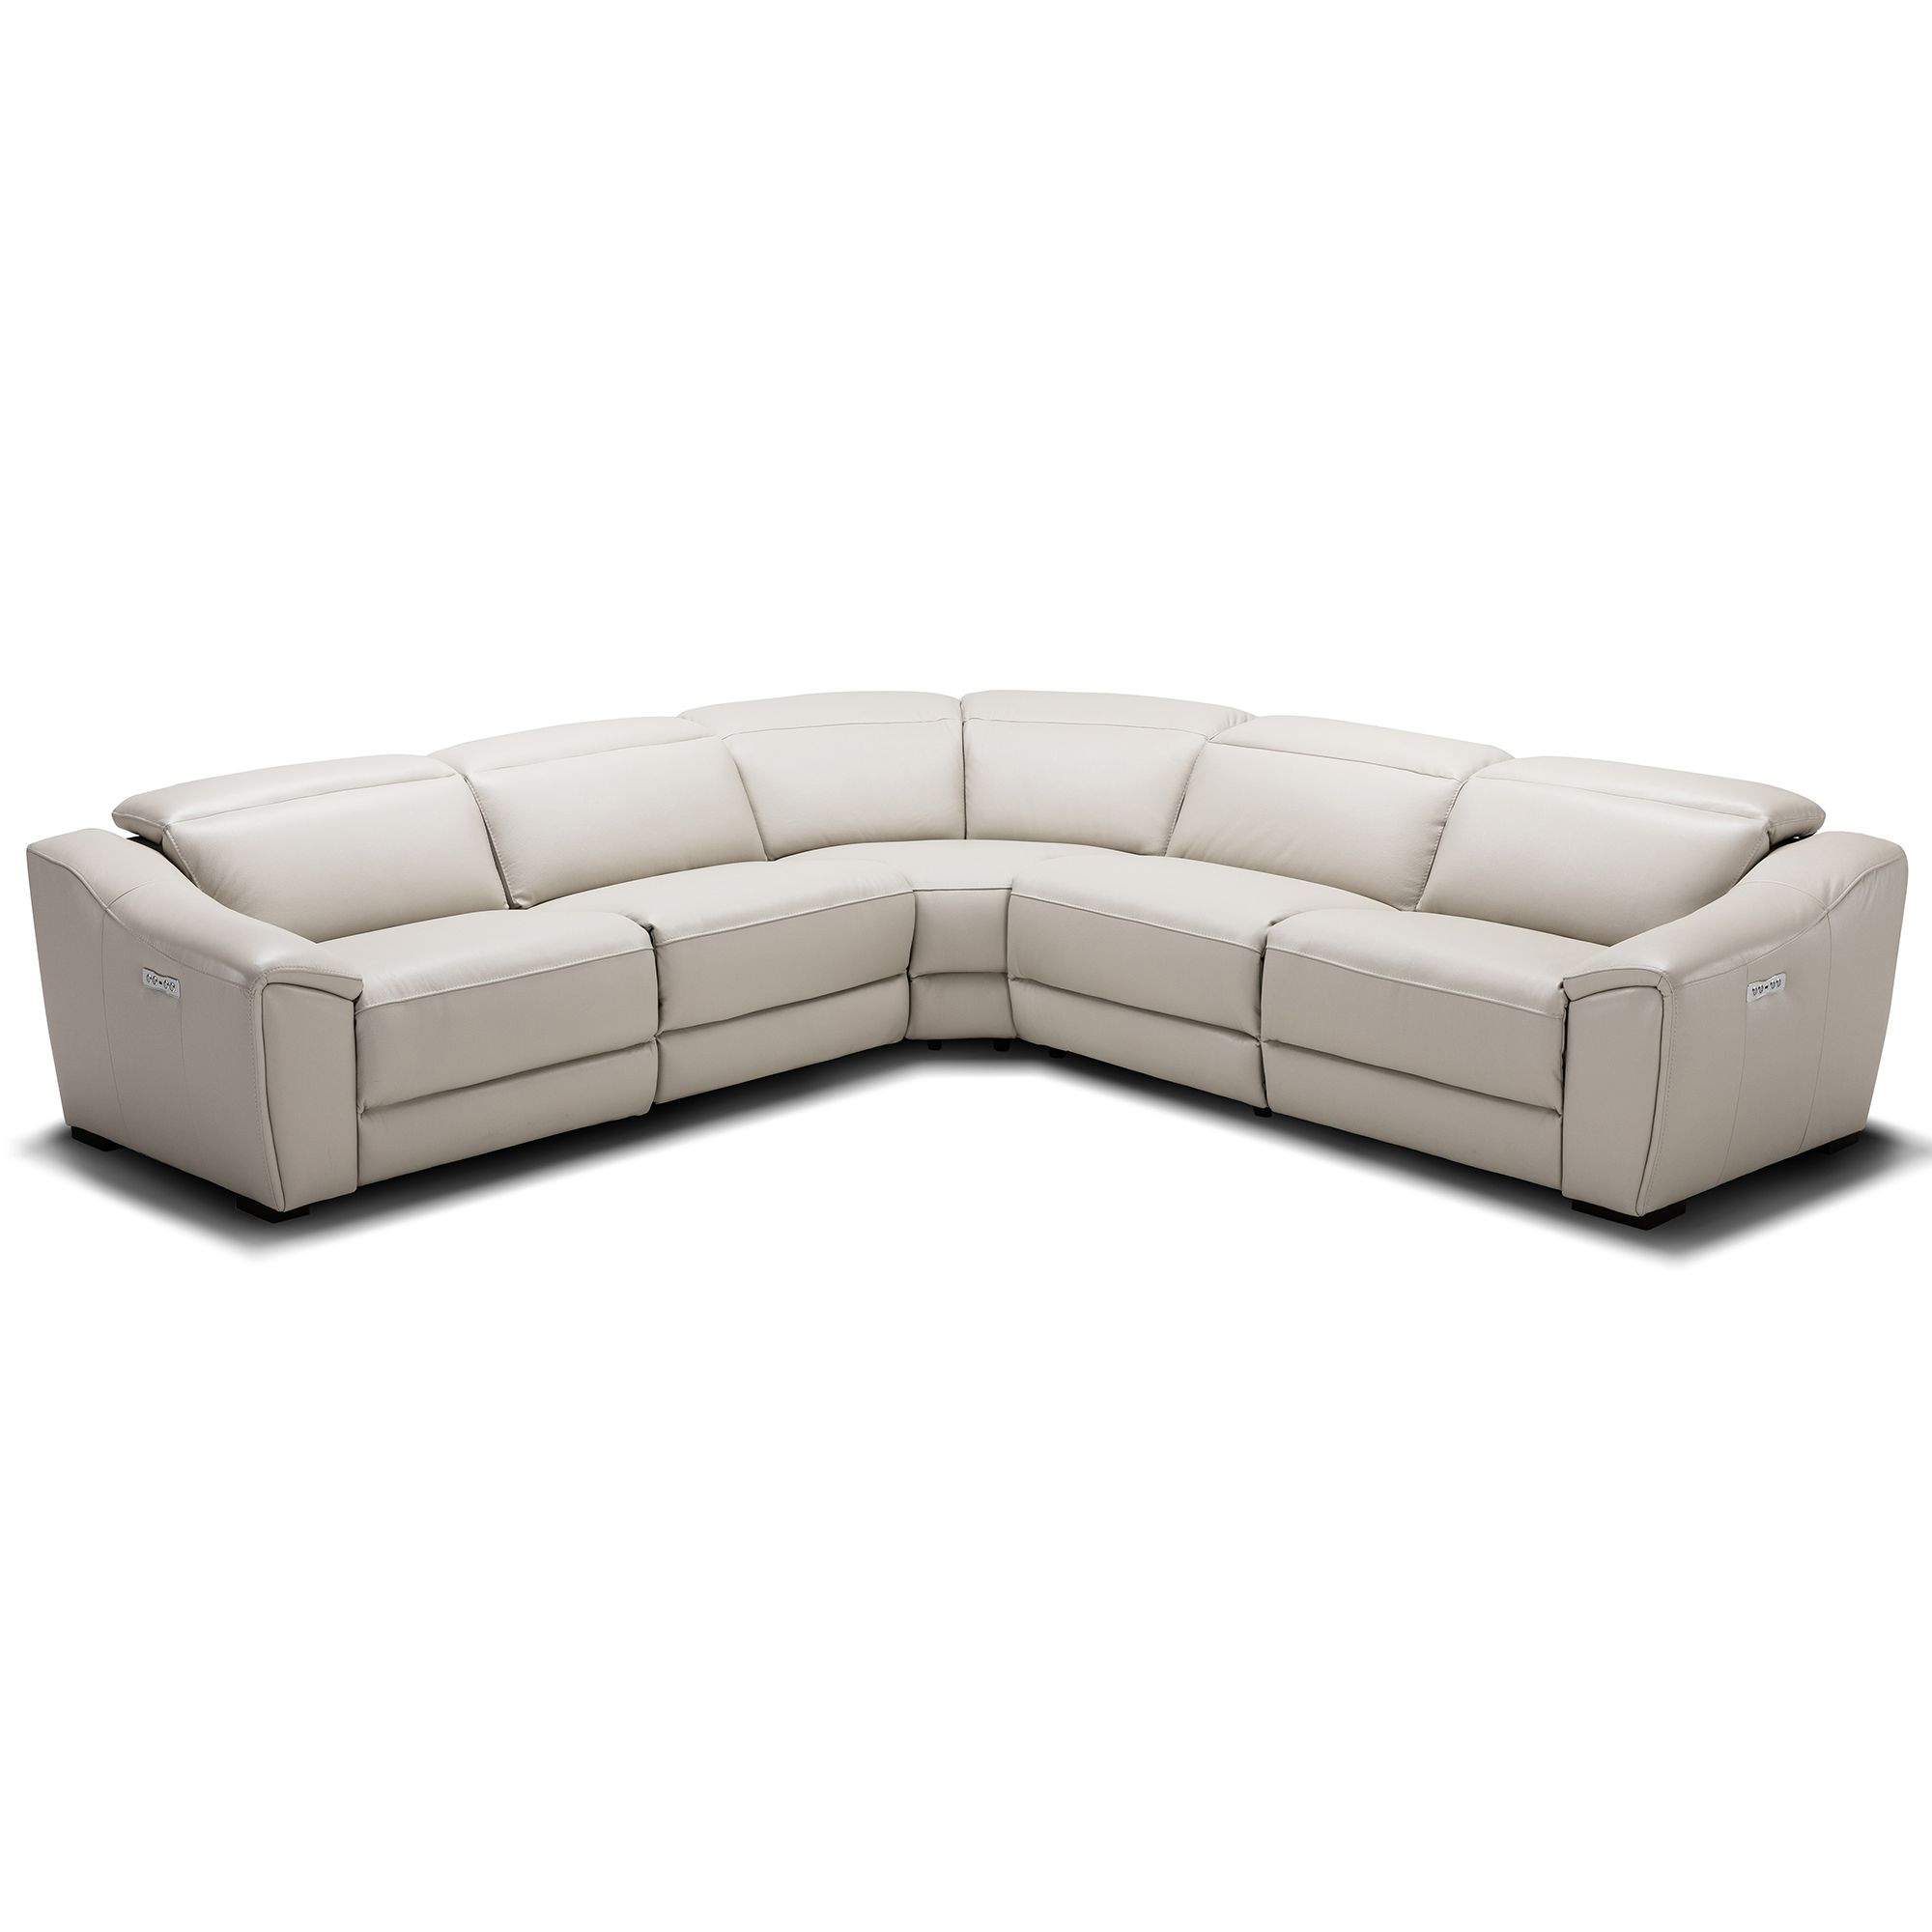 Astounding Jm Furniture Nova Motion Sectional Sofa Silver Grey Leather Pdpeps Interior Chair Design Pdpepsorg